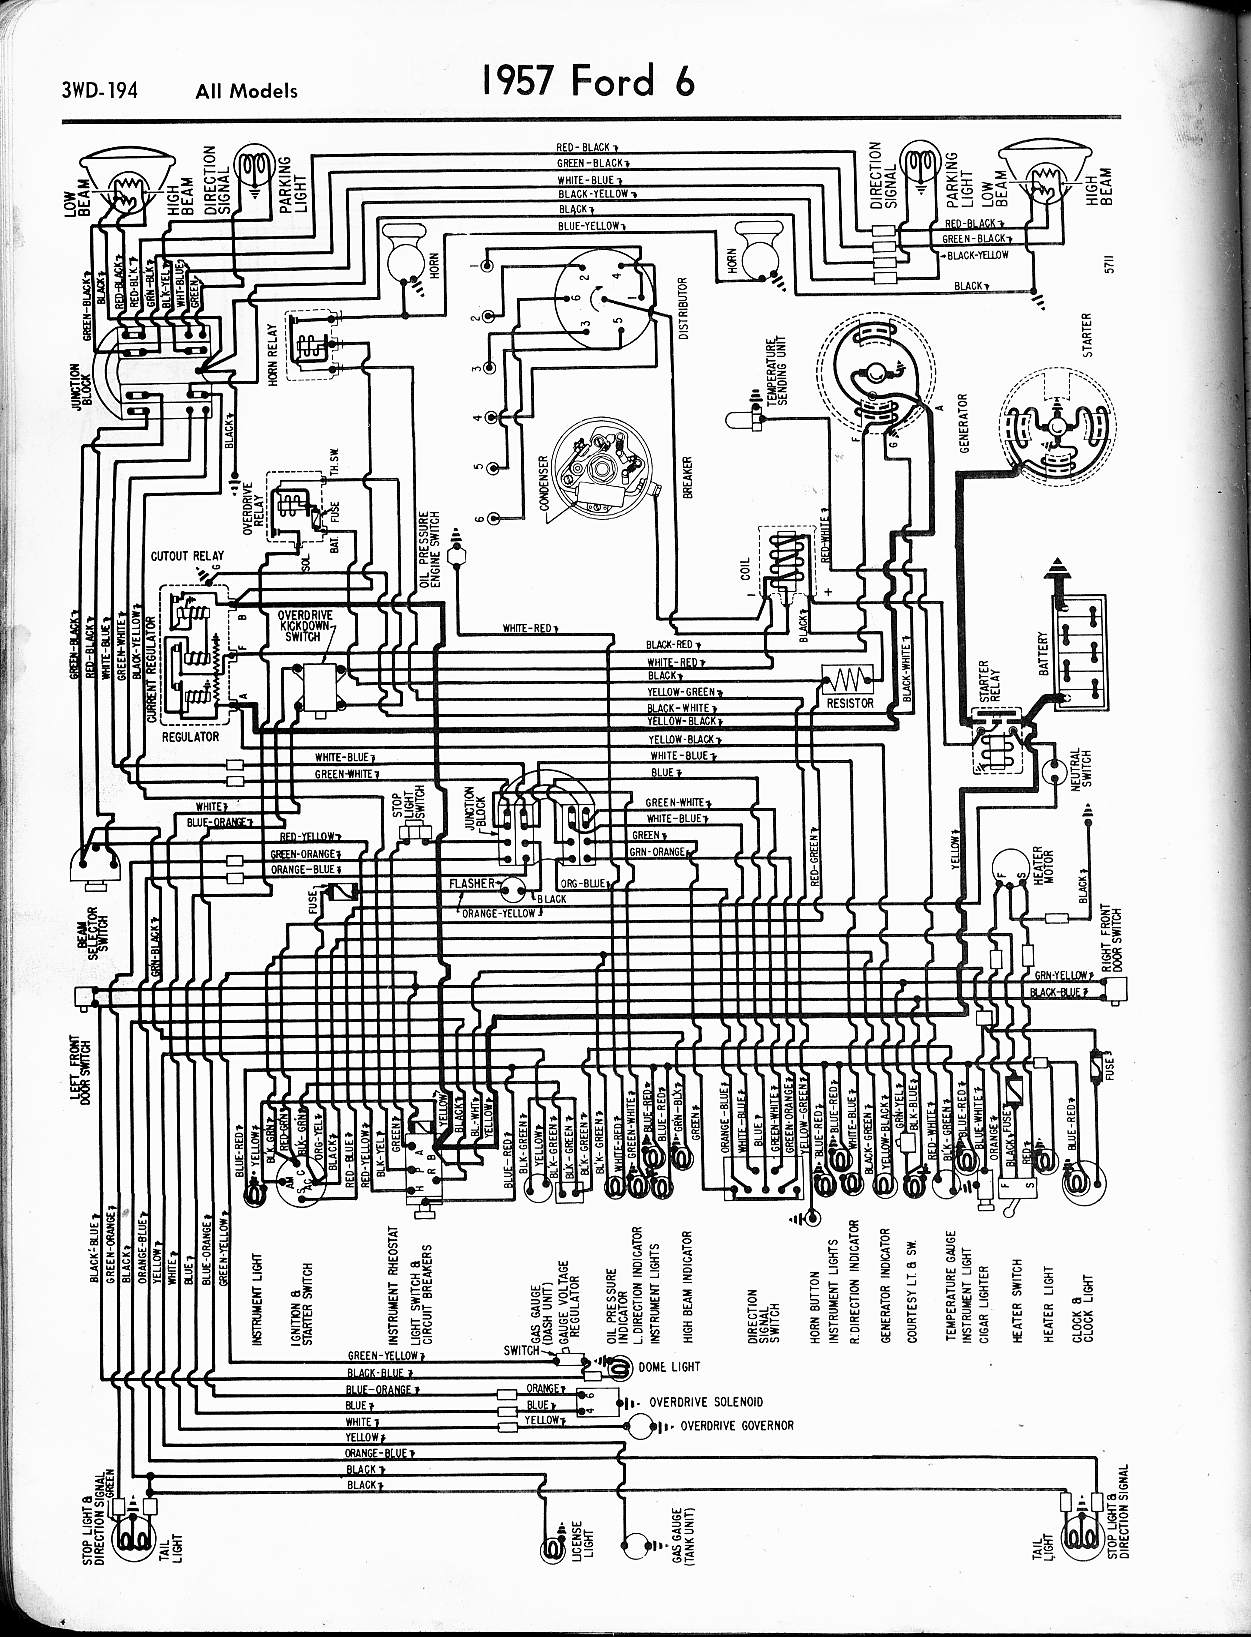 1965 Ford Mustang Alternator Wiring Diagram On 1965 Mustang Wiper